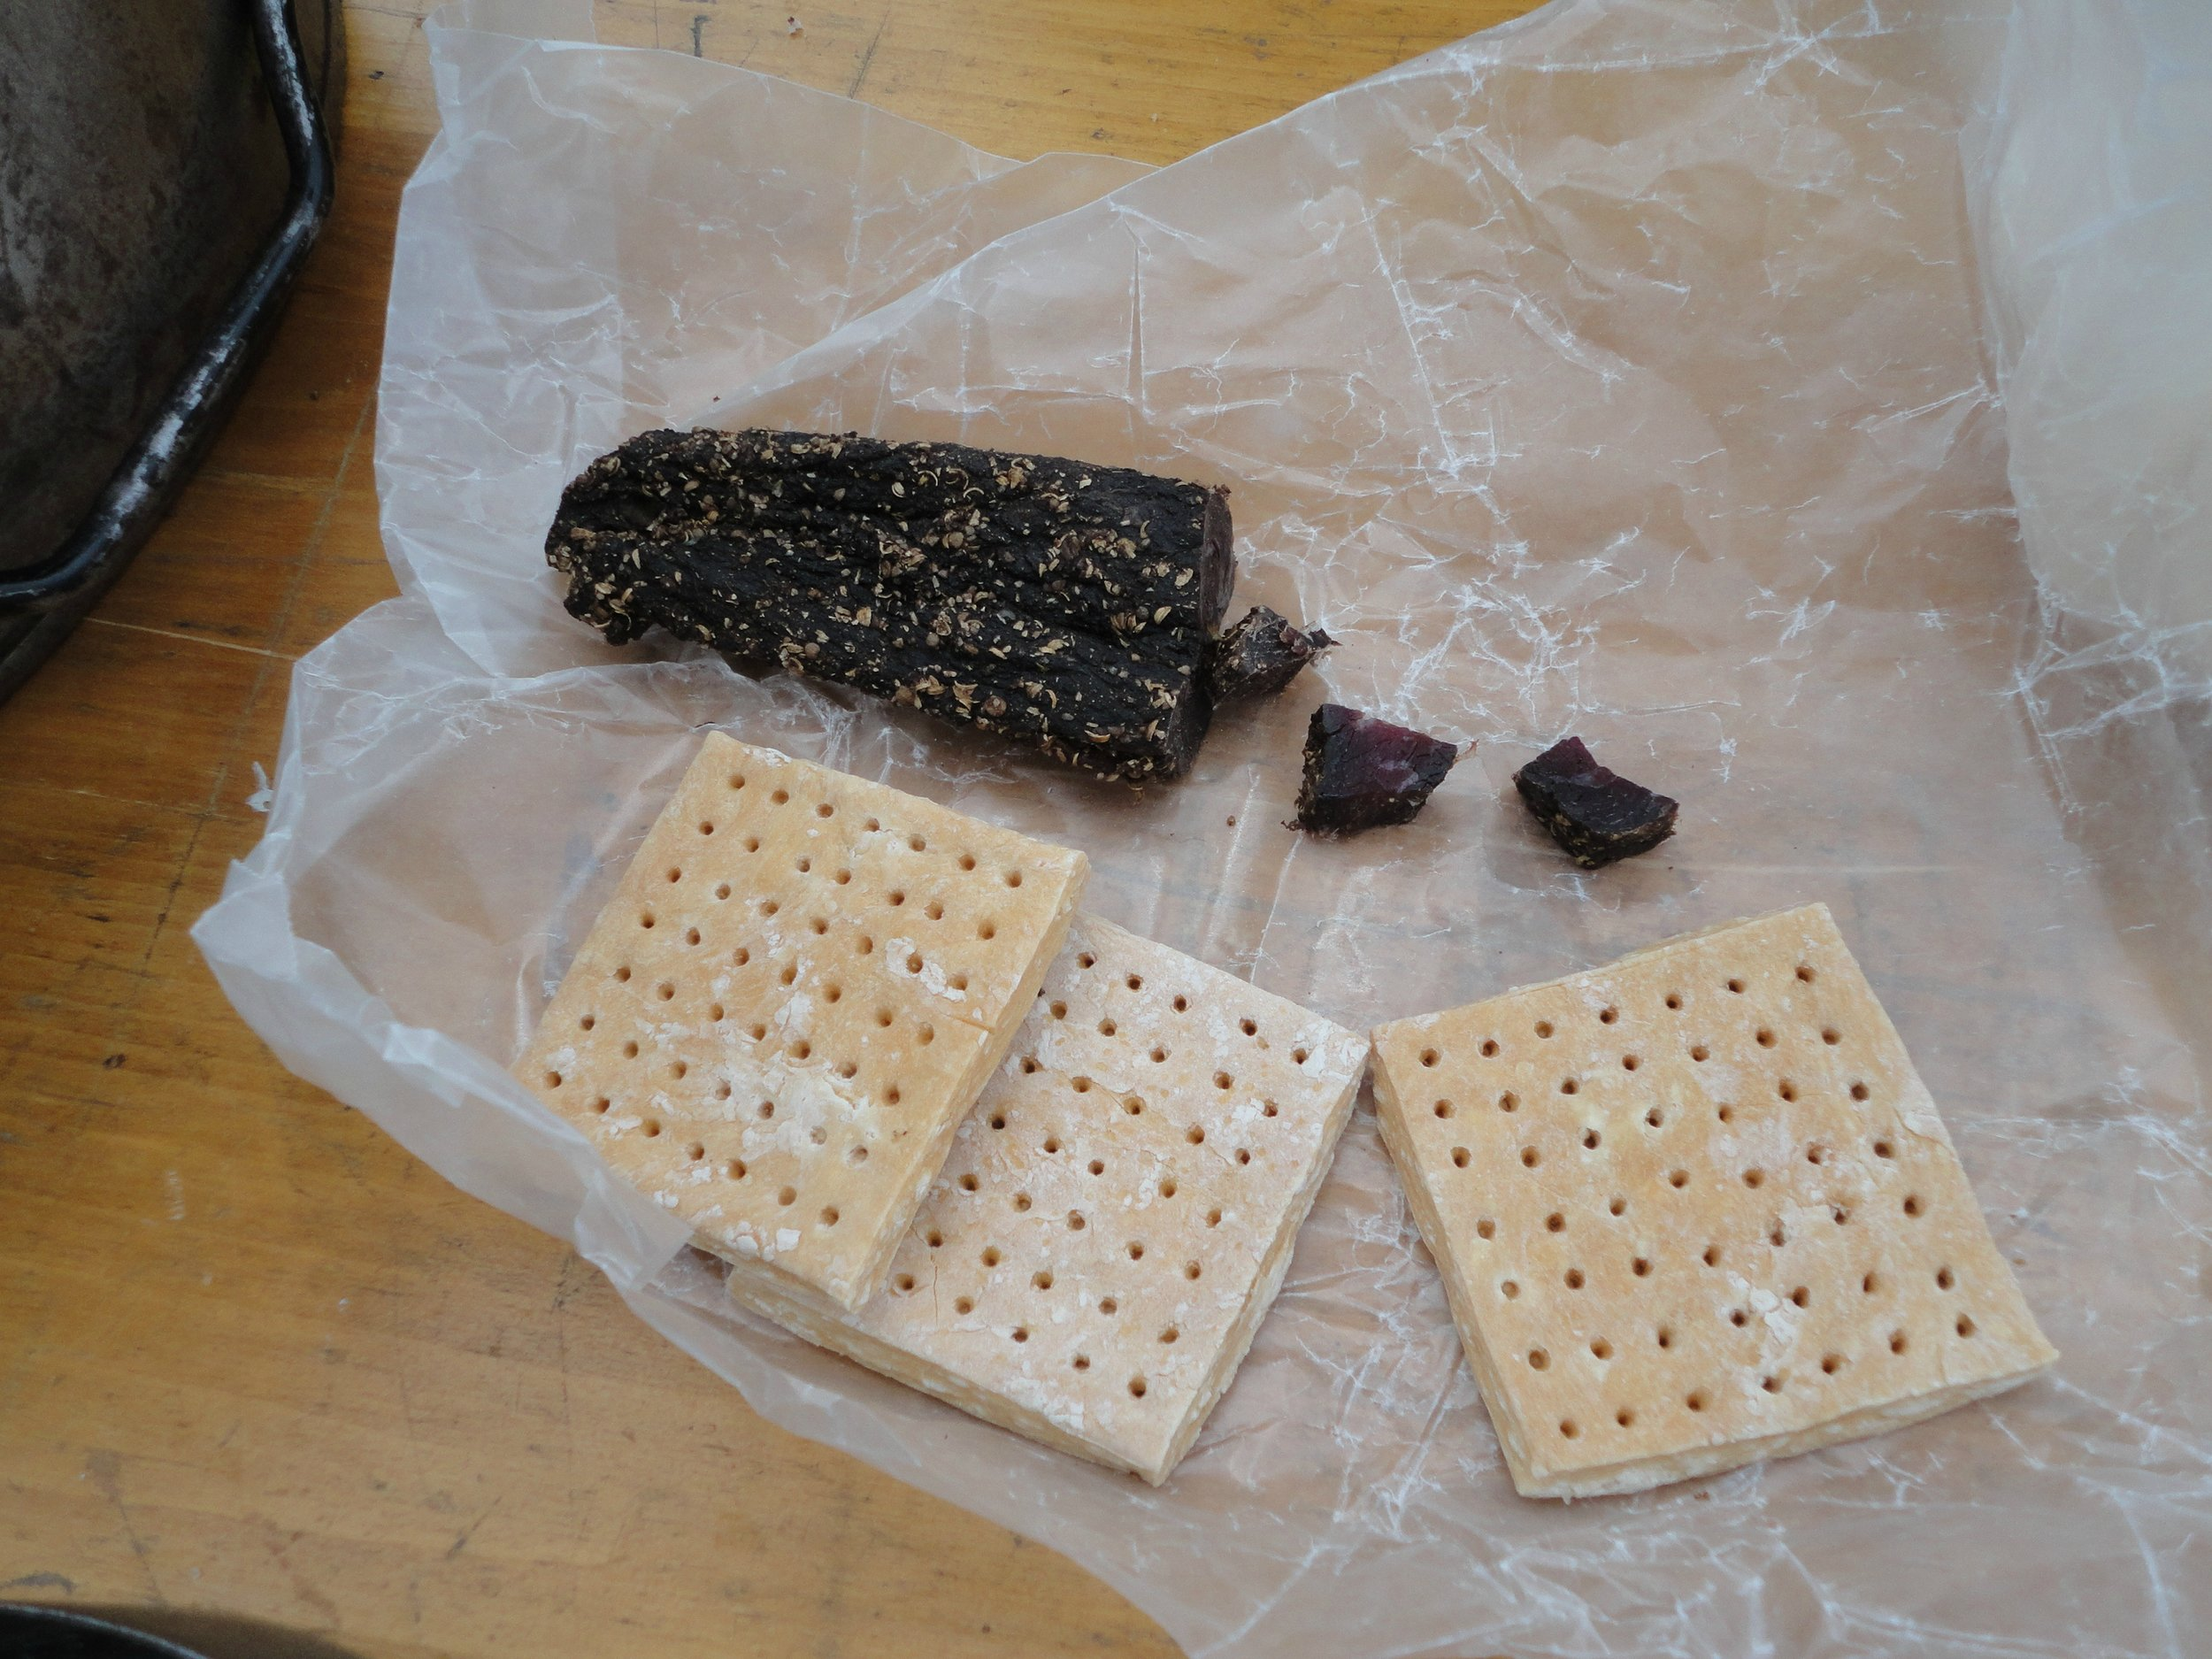 The pictured Hardtack reproduces original examples from the Boer War that had exactly 49 holes (count them...).  Also pictured is an example of Biltong sausage which tastes way better than it looks...